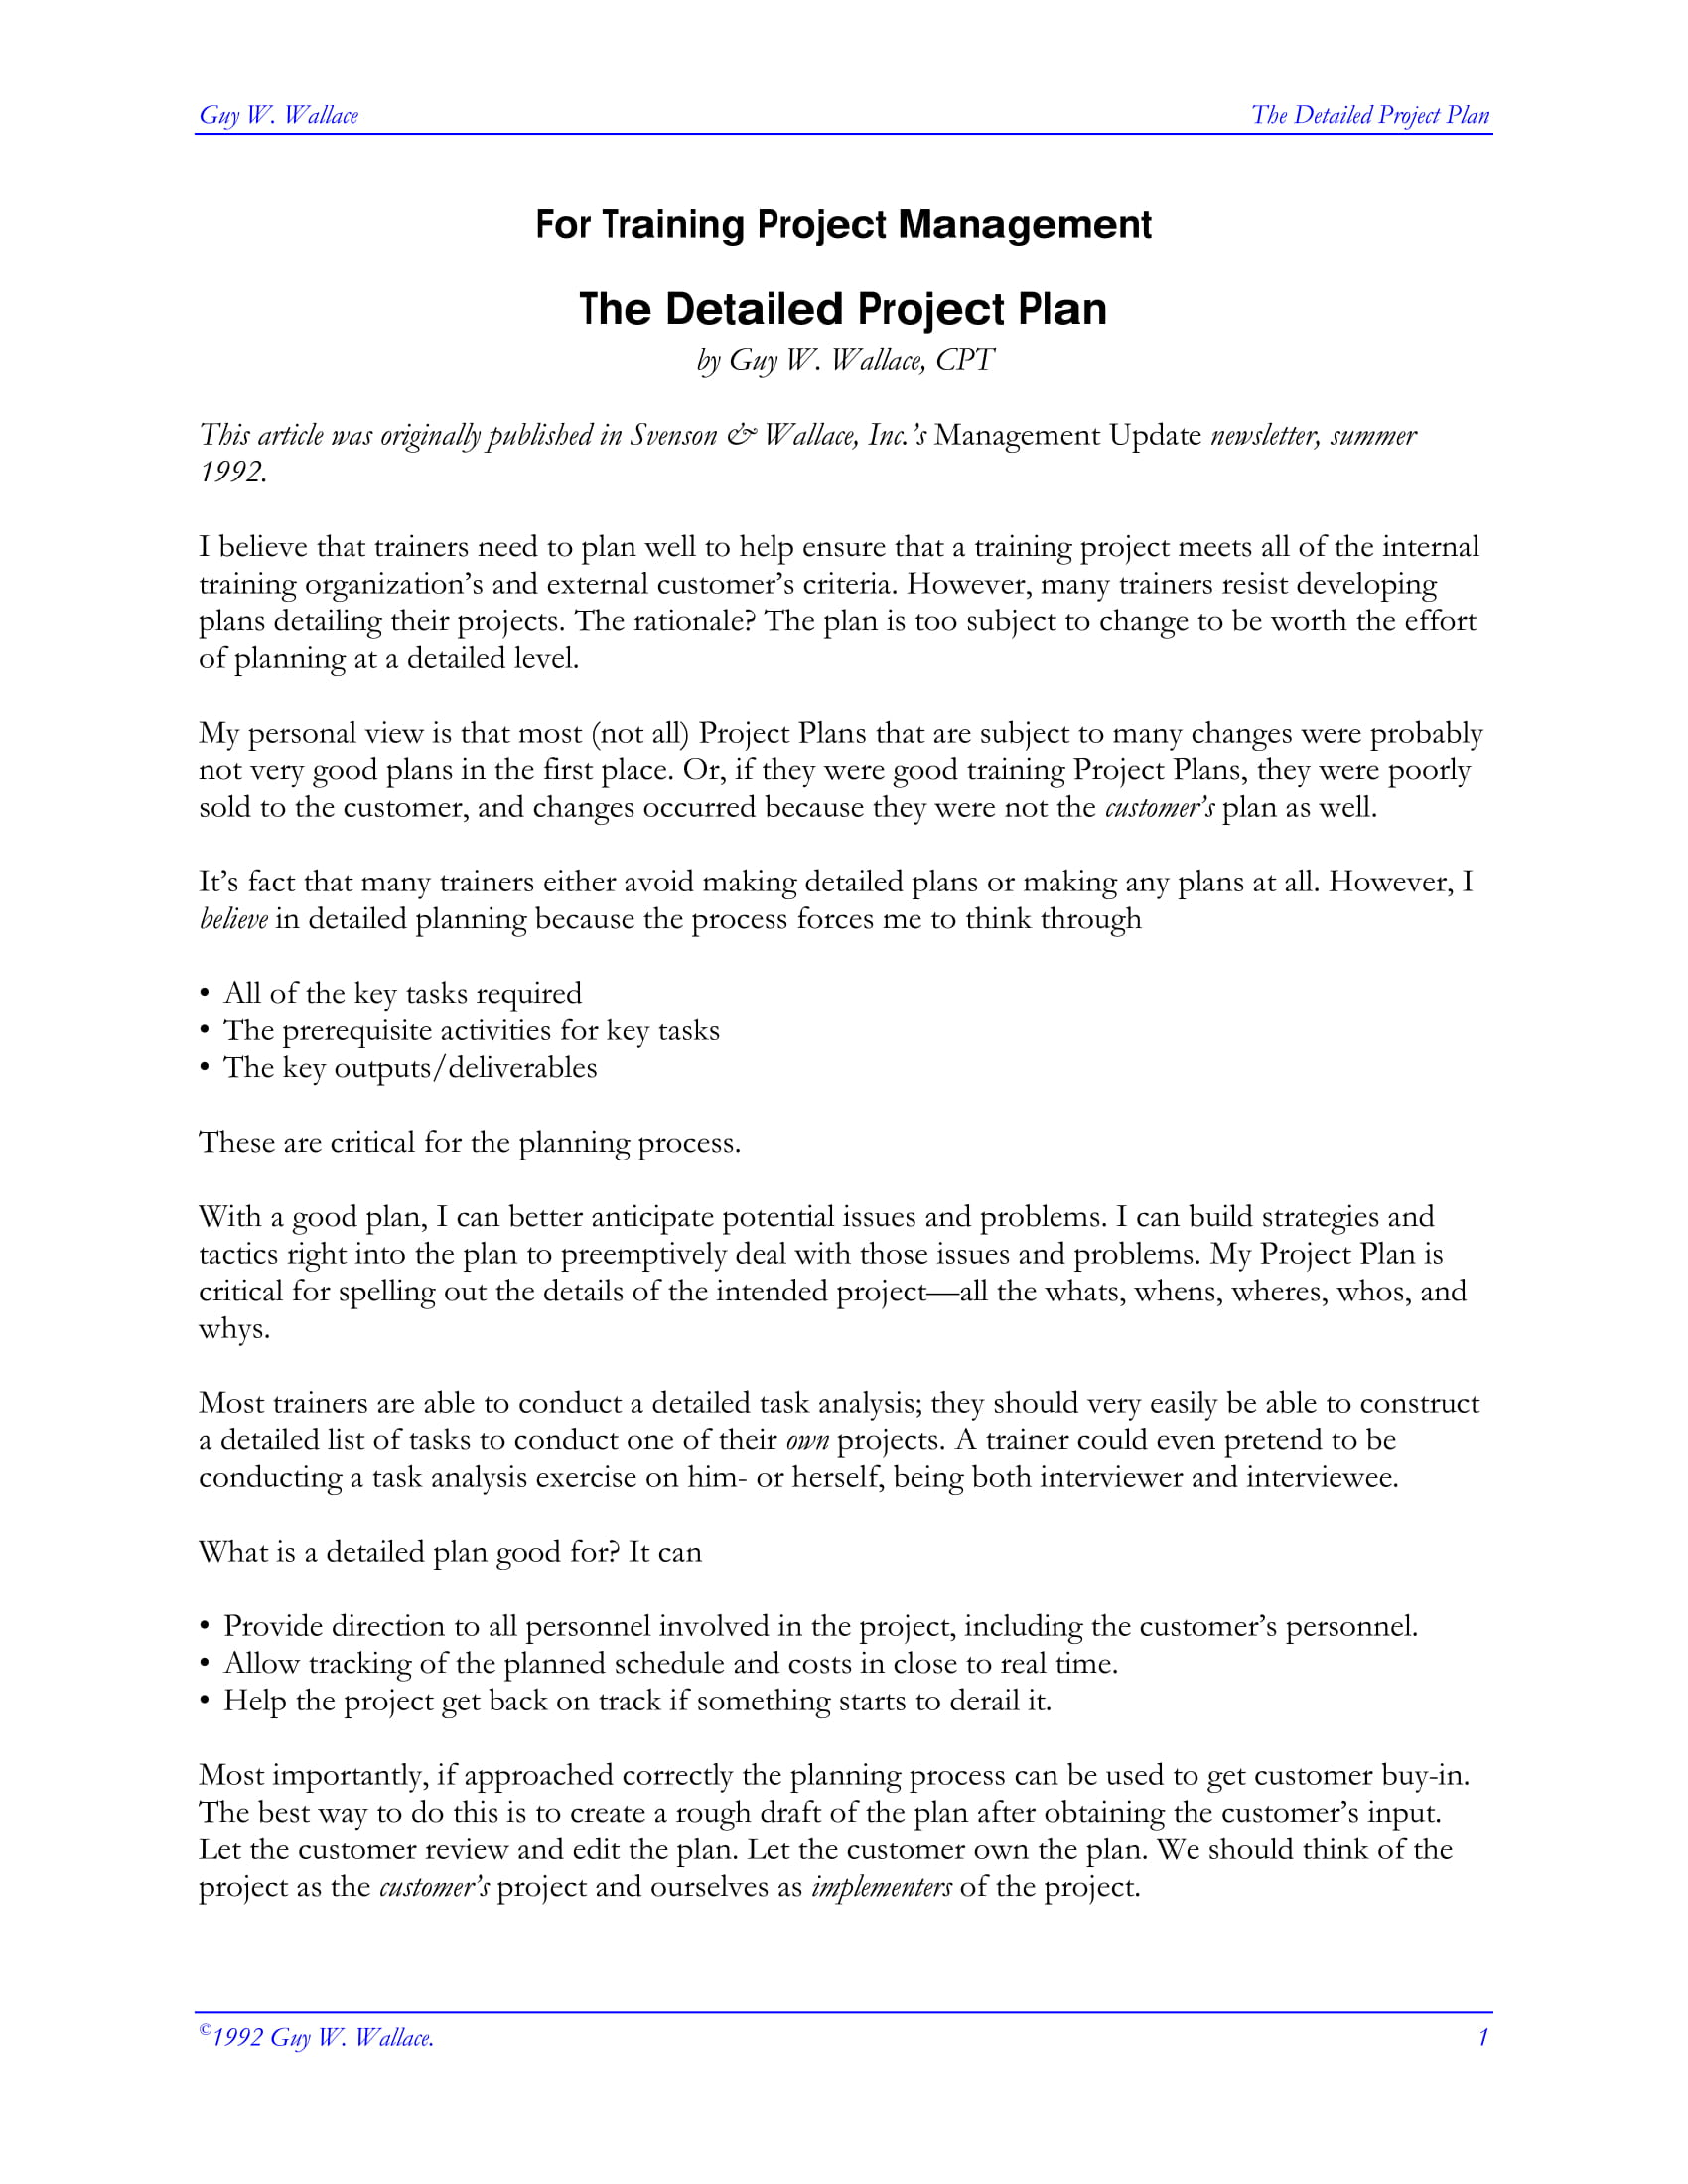 training project management plan example 1